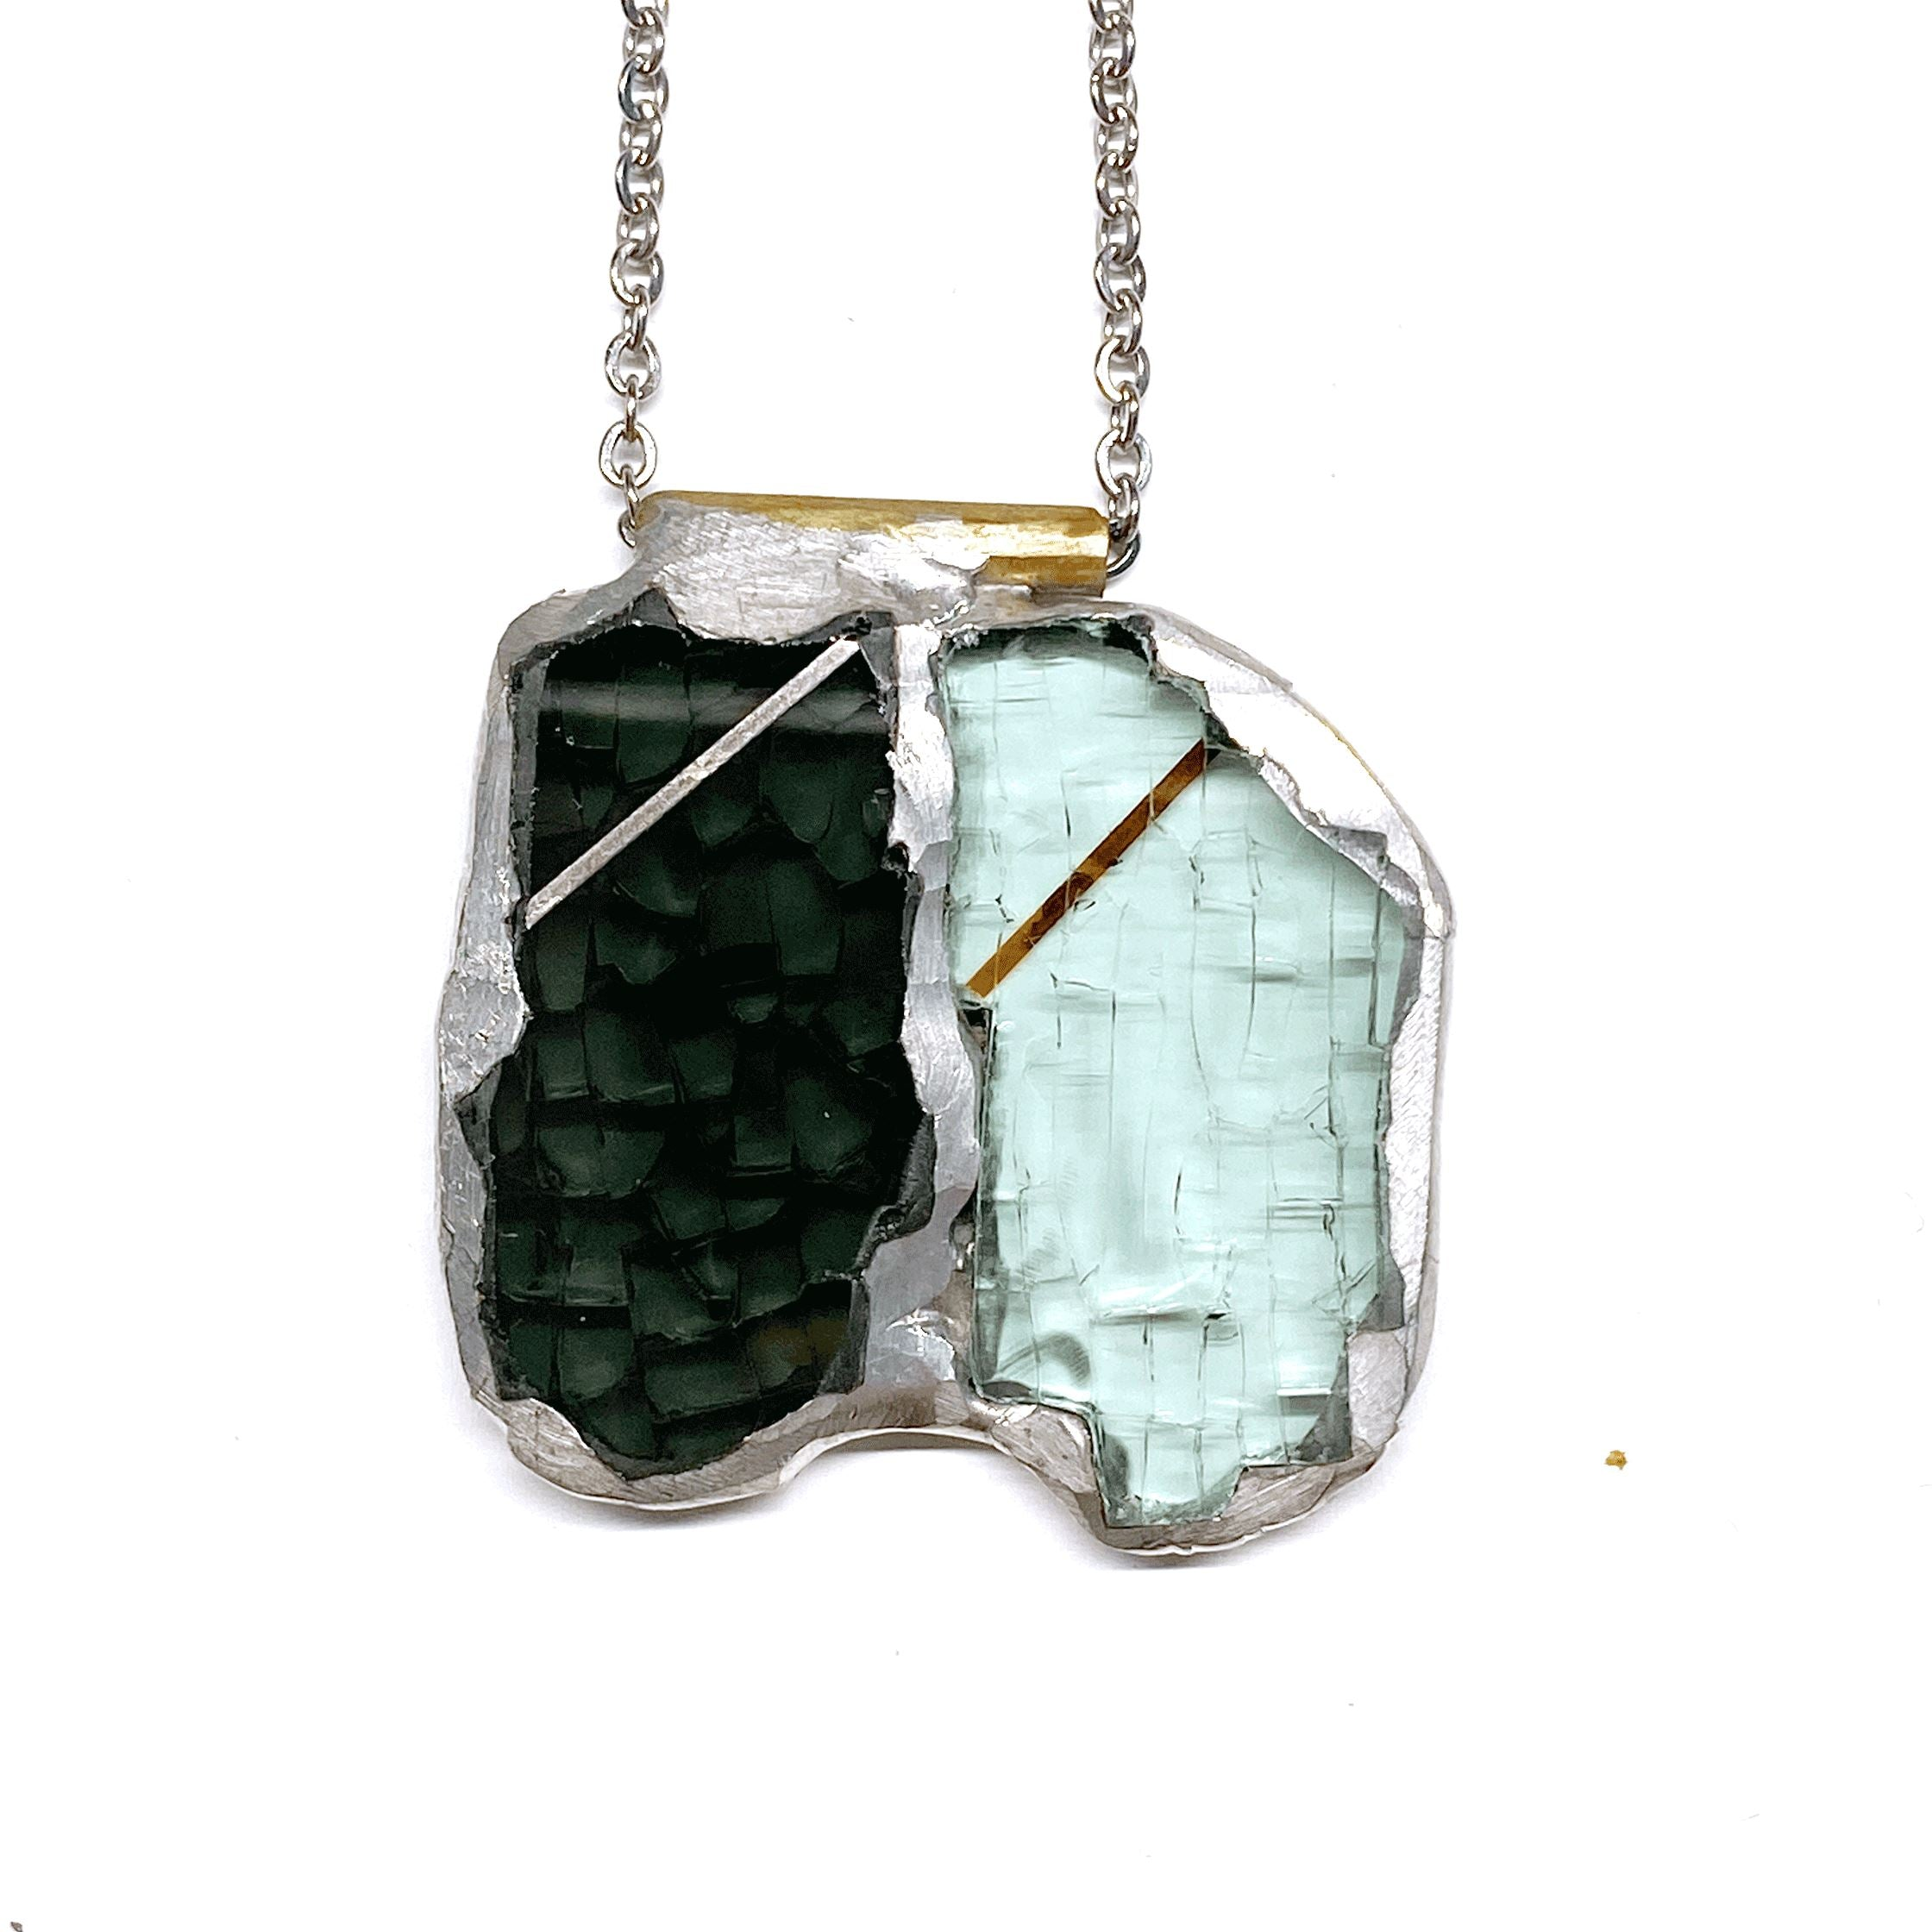 Auto Glass Necklace No.416 necklace Cleveland Street Glass